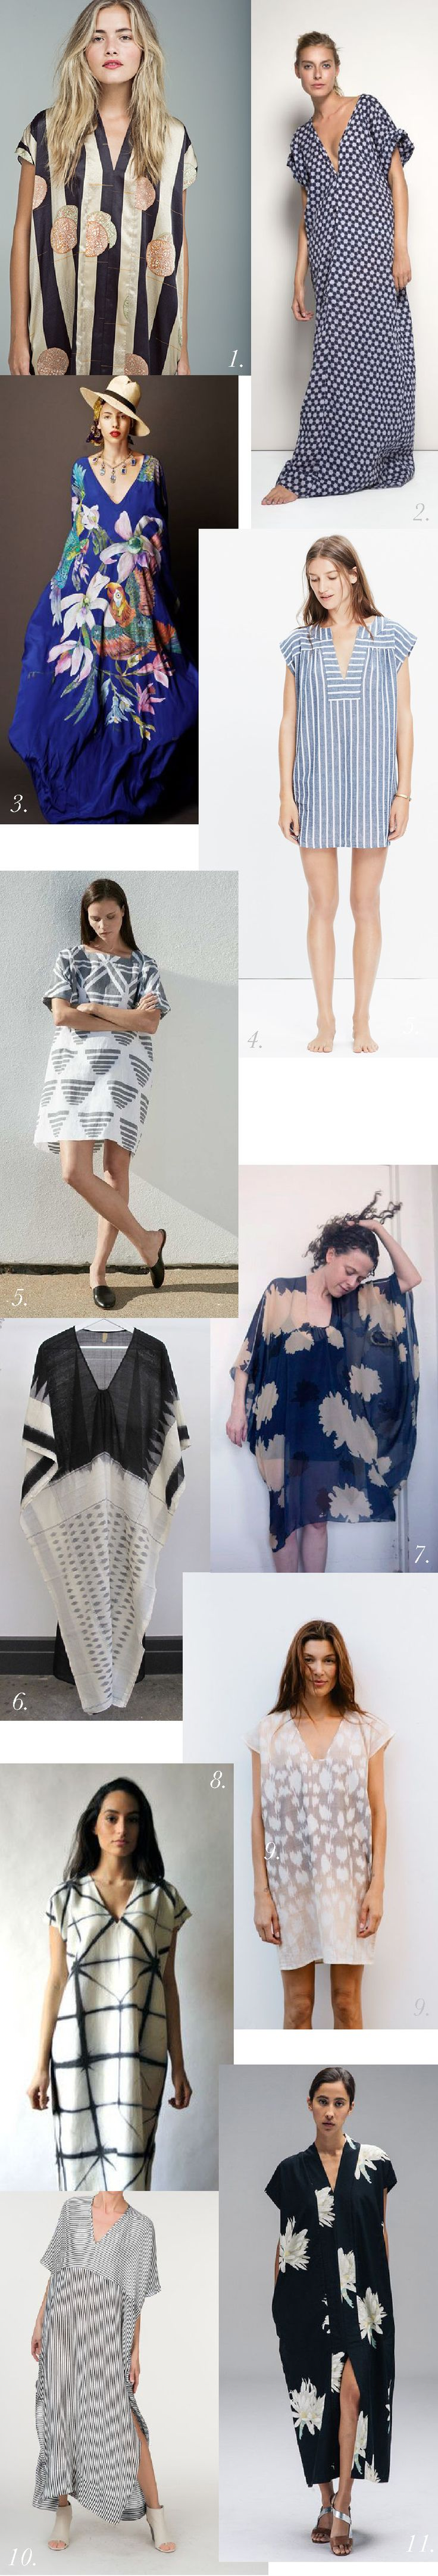 Dramatically printed caftans https://closetcasepatterns.com/the-charlie-caftan-pattern-inspiration-styling/